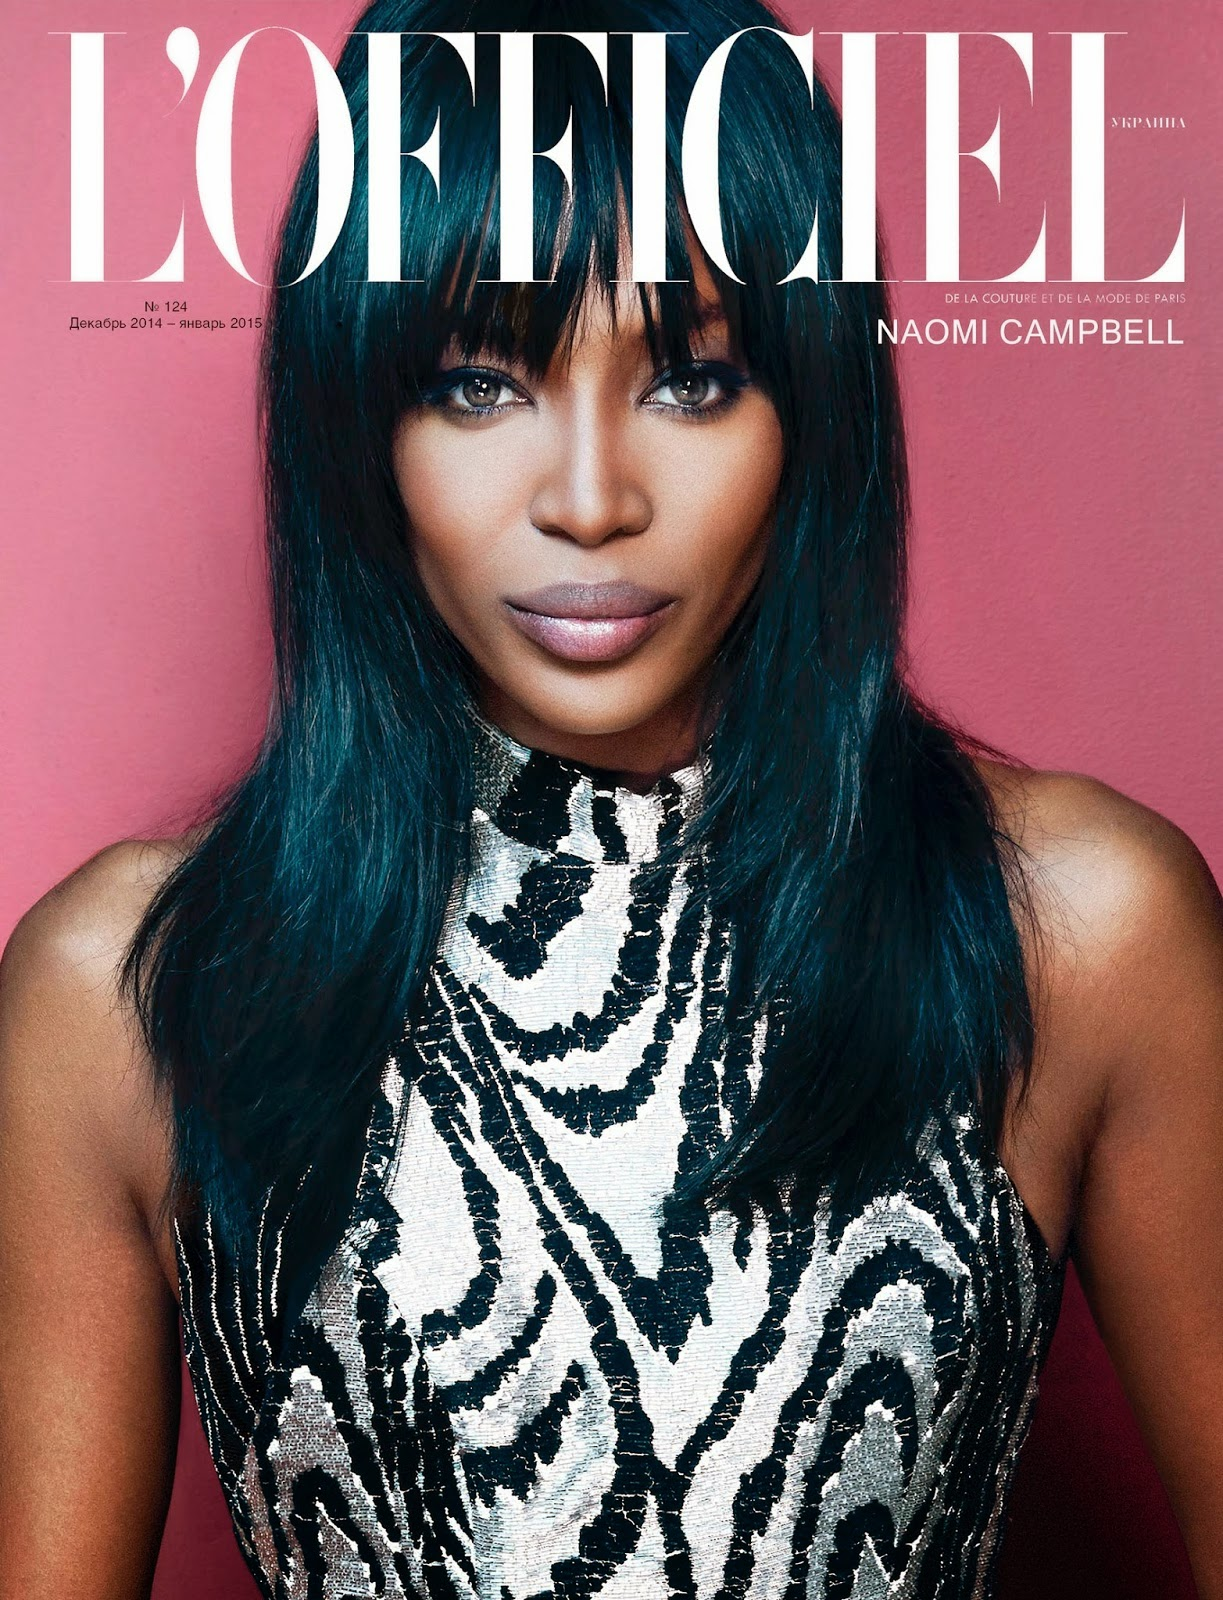 Naomi Campbell By An Le For L'officiel, Ukraine, January 2015